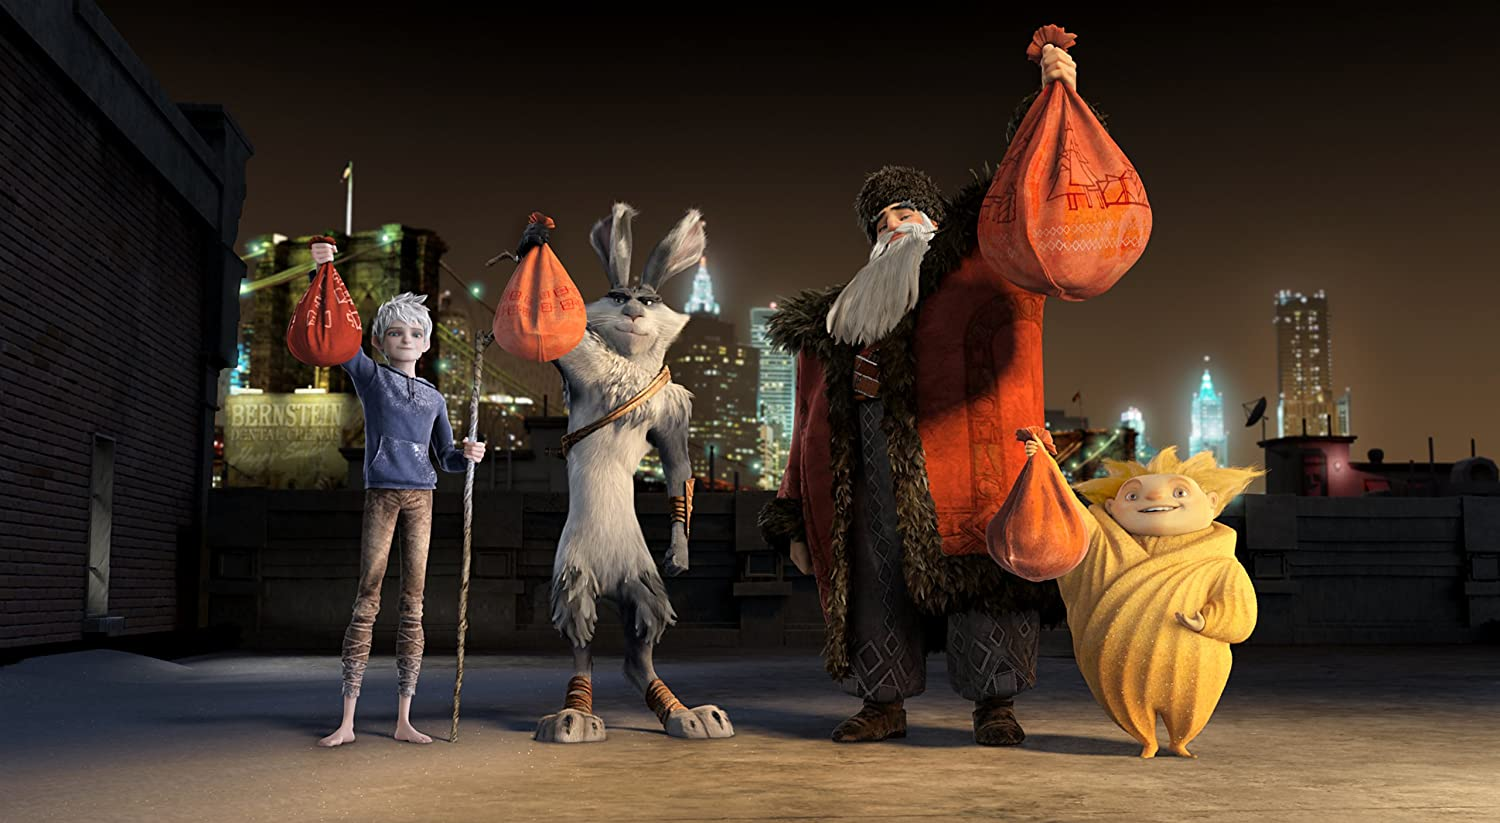 Amazon Rise Of The Guardians Chris Pine Alec Baldwin Jude Law Isla Fisher Hugh Jackman Peter Ramsey Movies TV